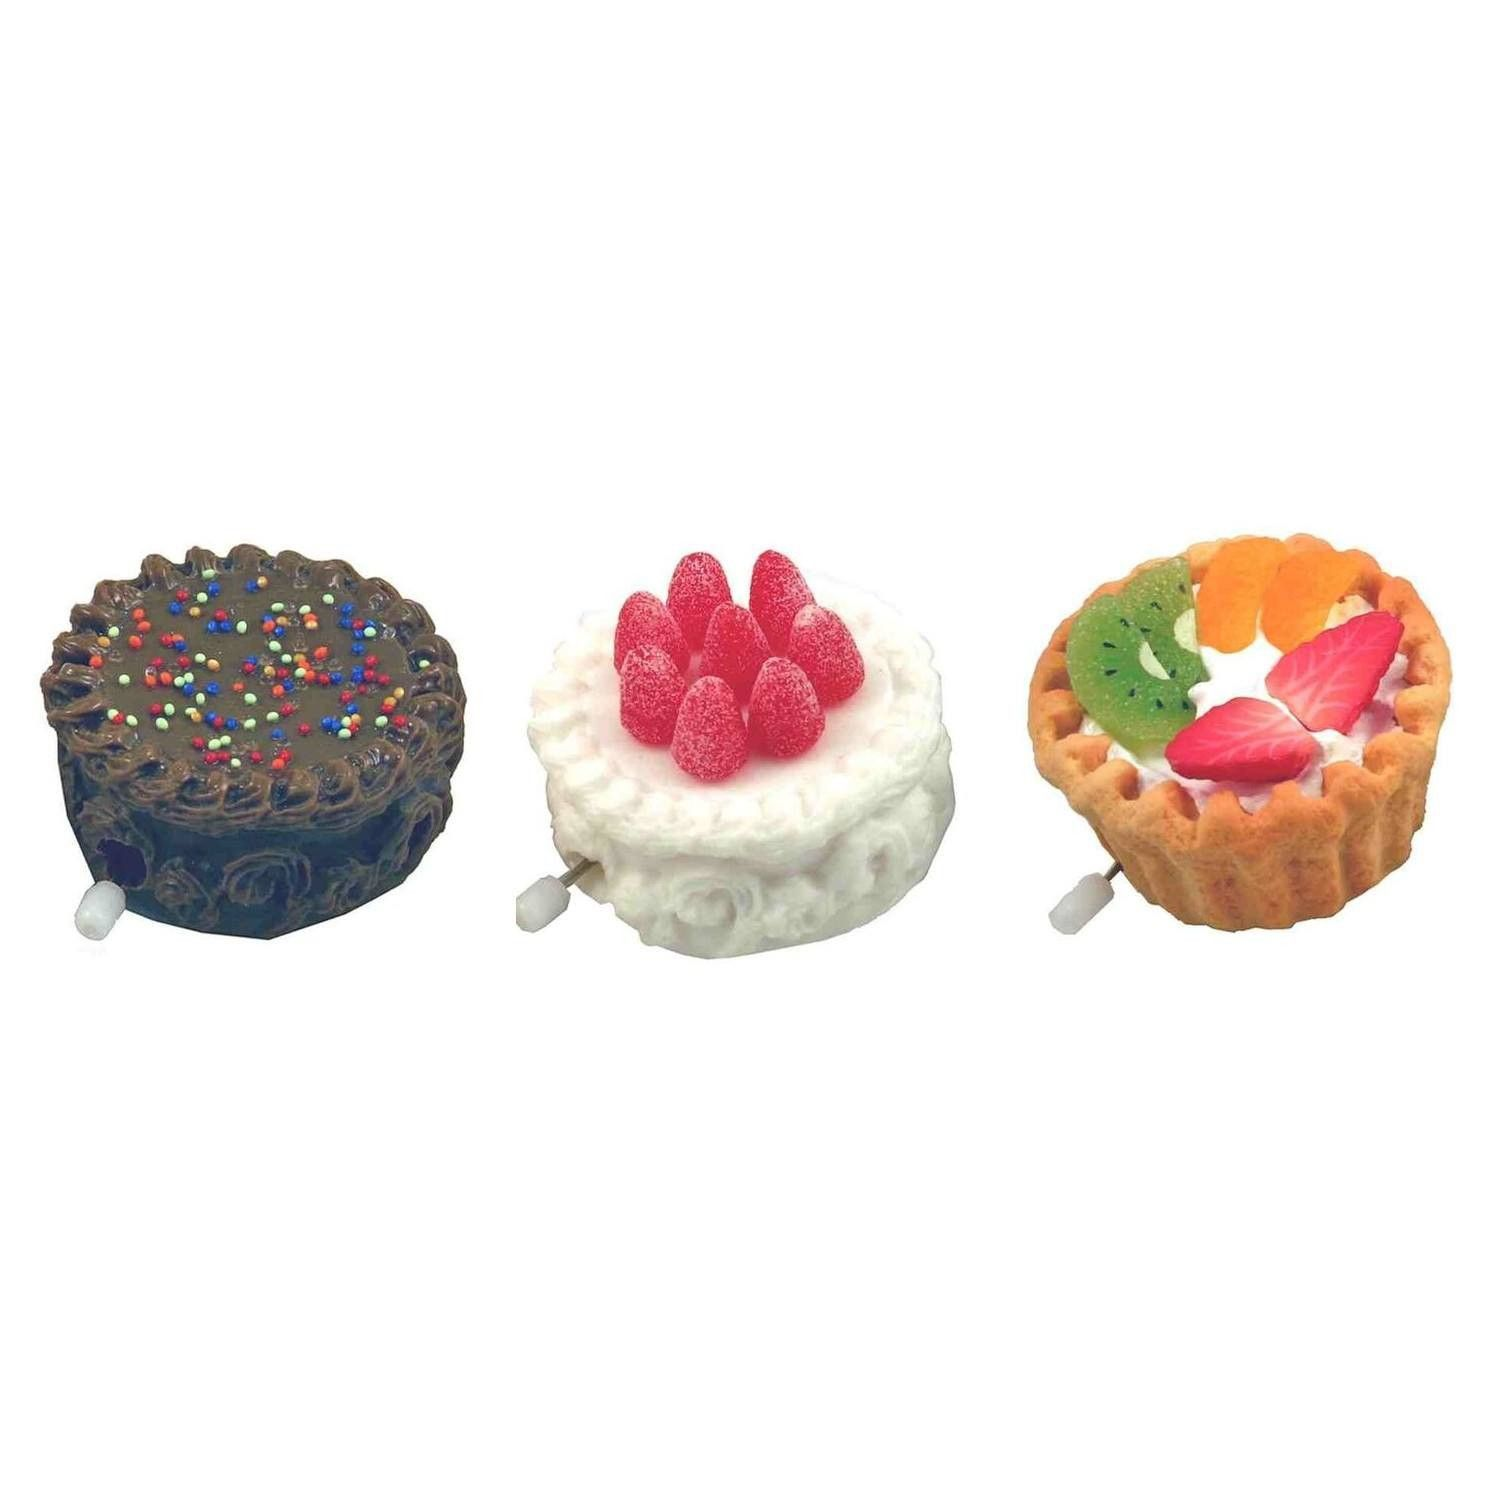 Runaway Cake Wind-Up Toy - Set of 3 - now only $6.00!  #UniqueGifts #karmakiss #allgiftythings #YouKnowYouWantIt #UnusualGifts